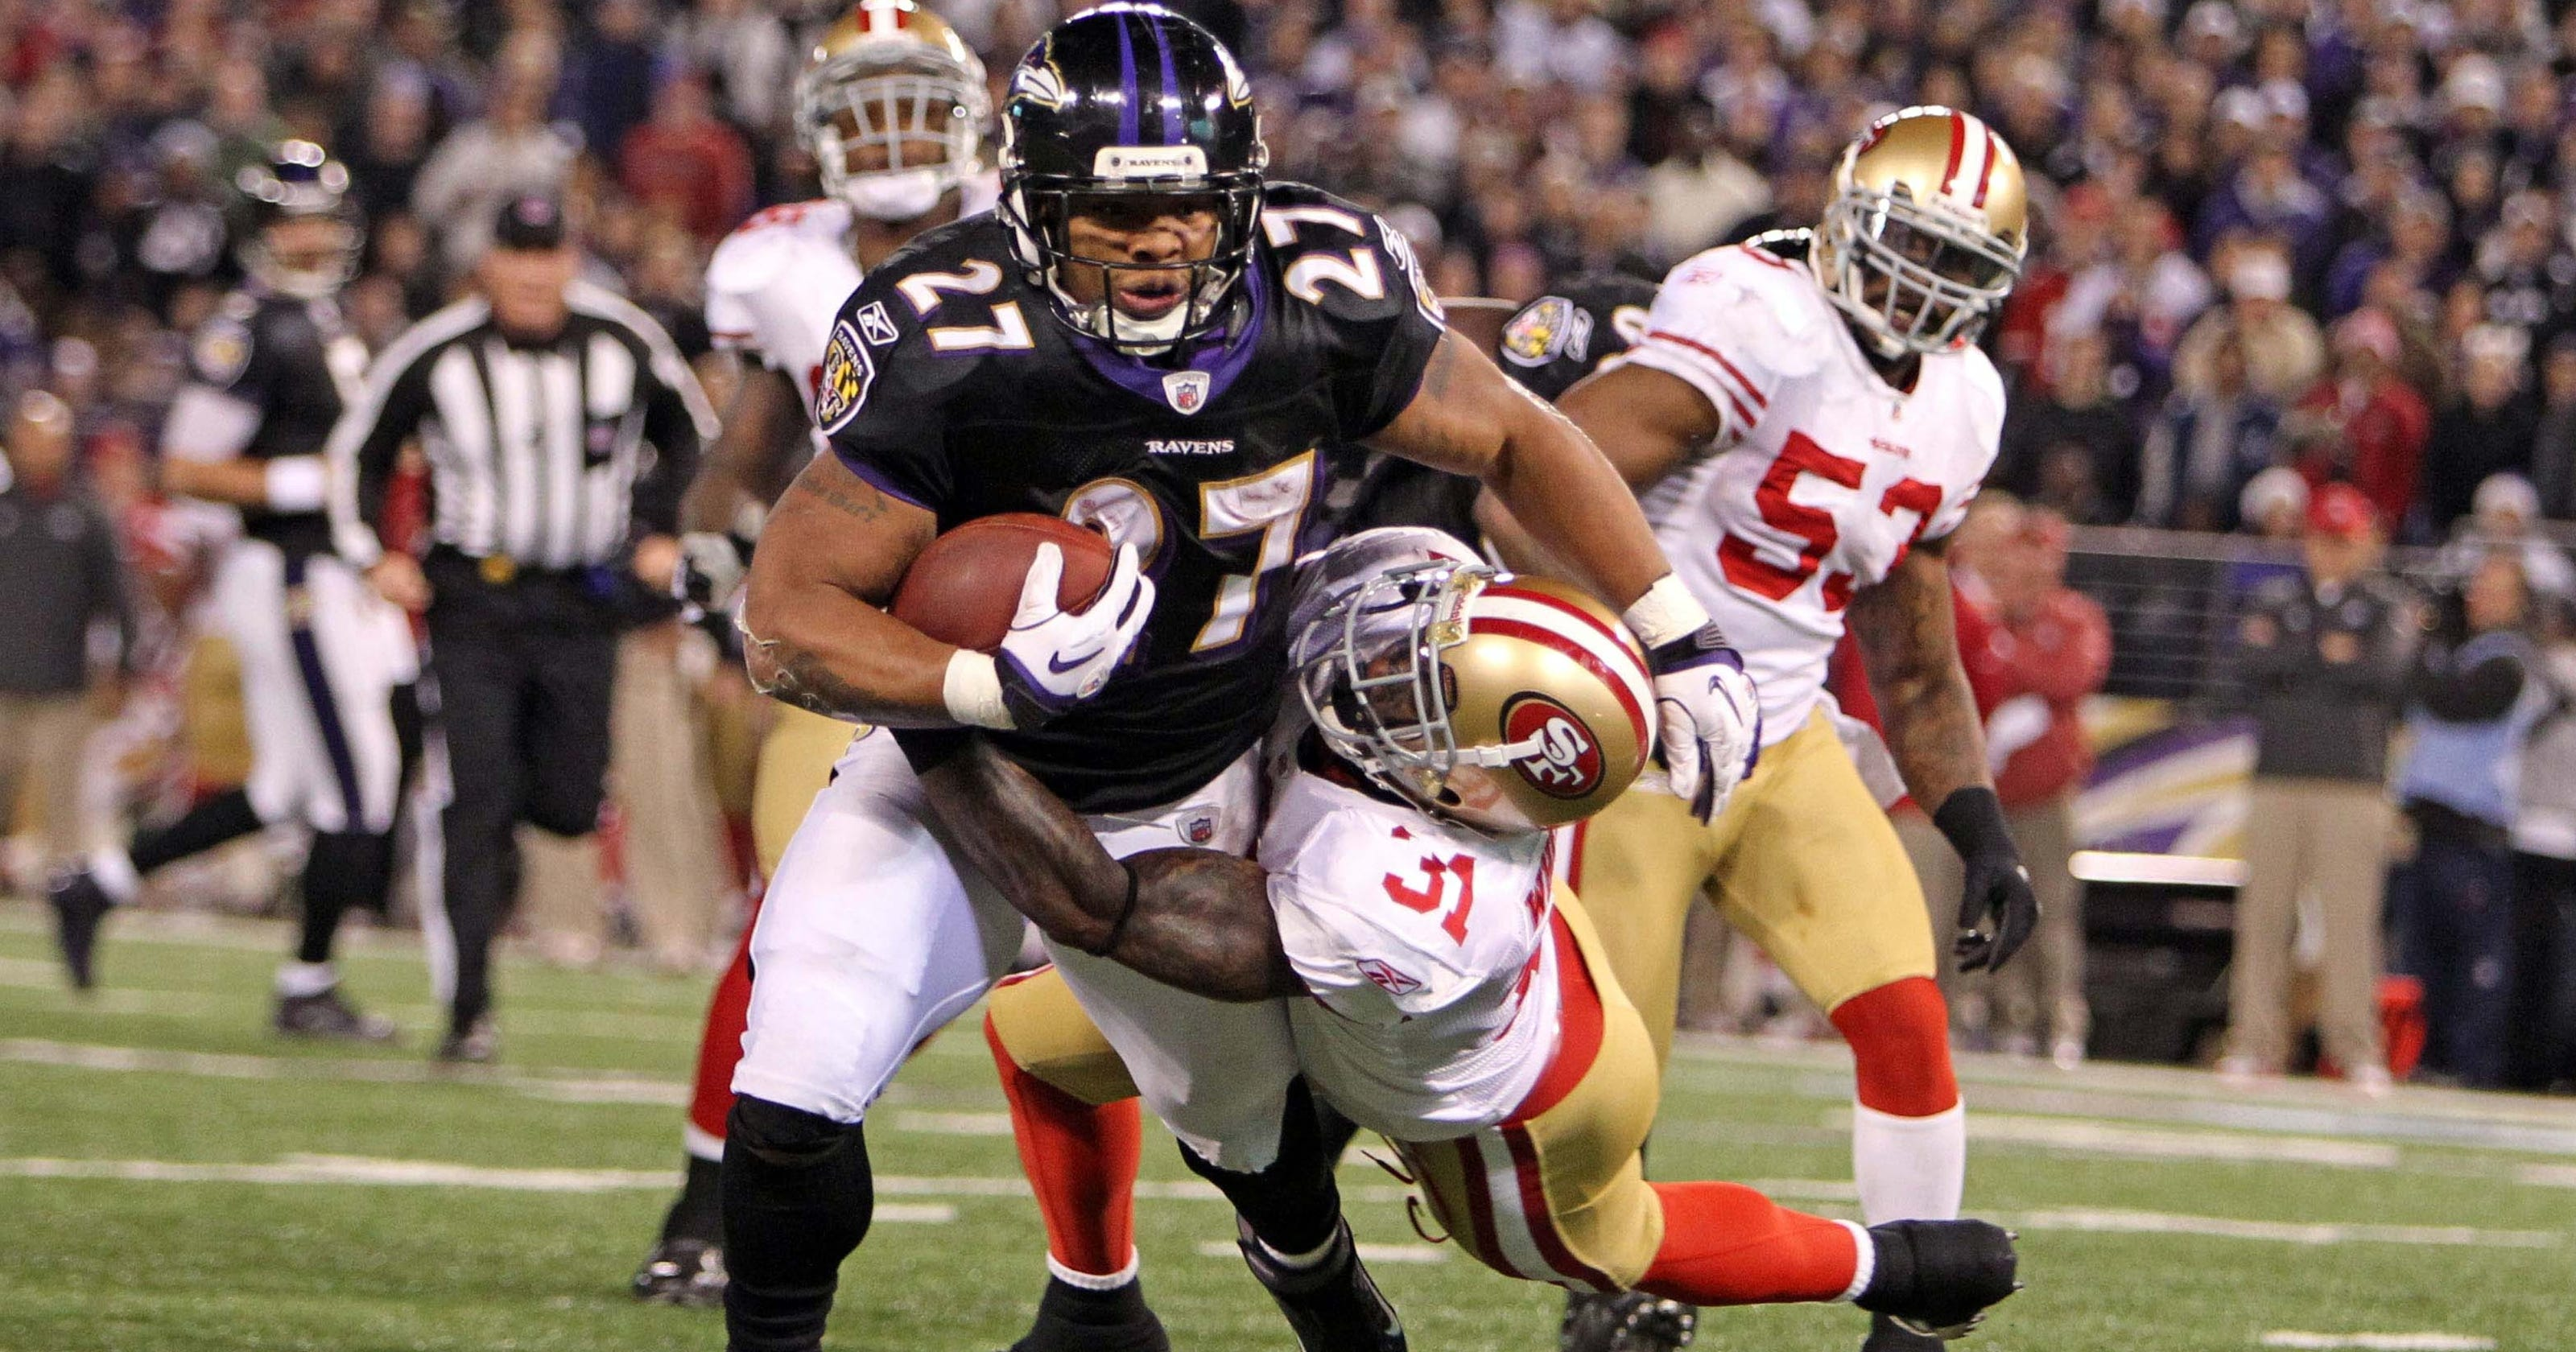 Ravens-49ers  Five story lines for Super Bowl XLVII 8a7fe0c4f